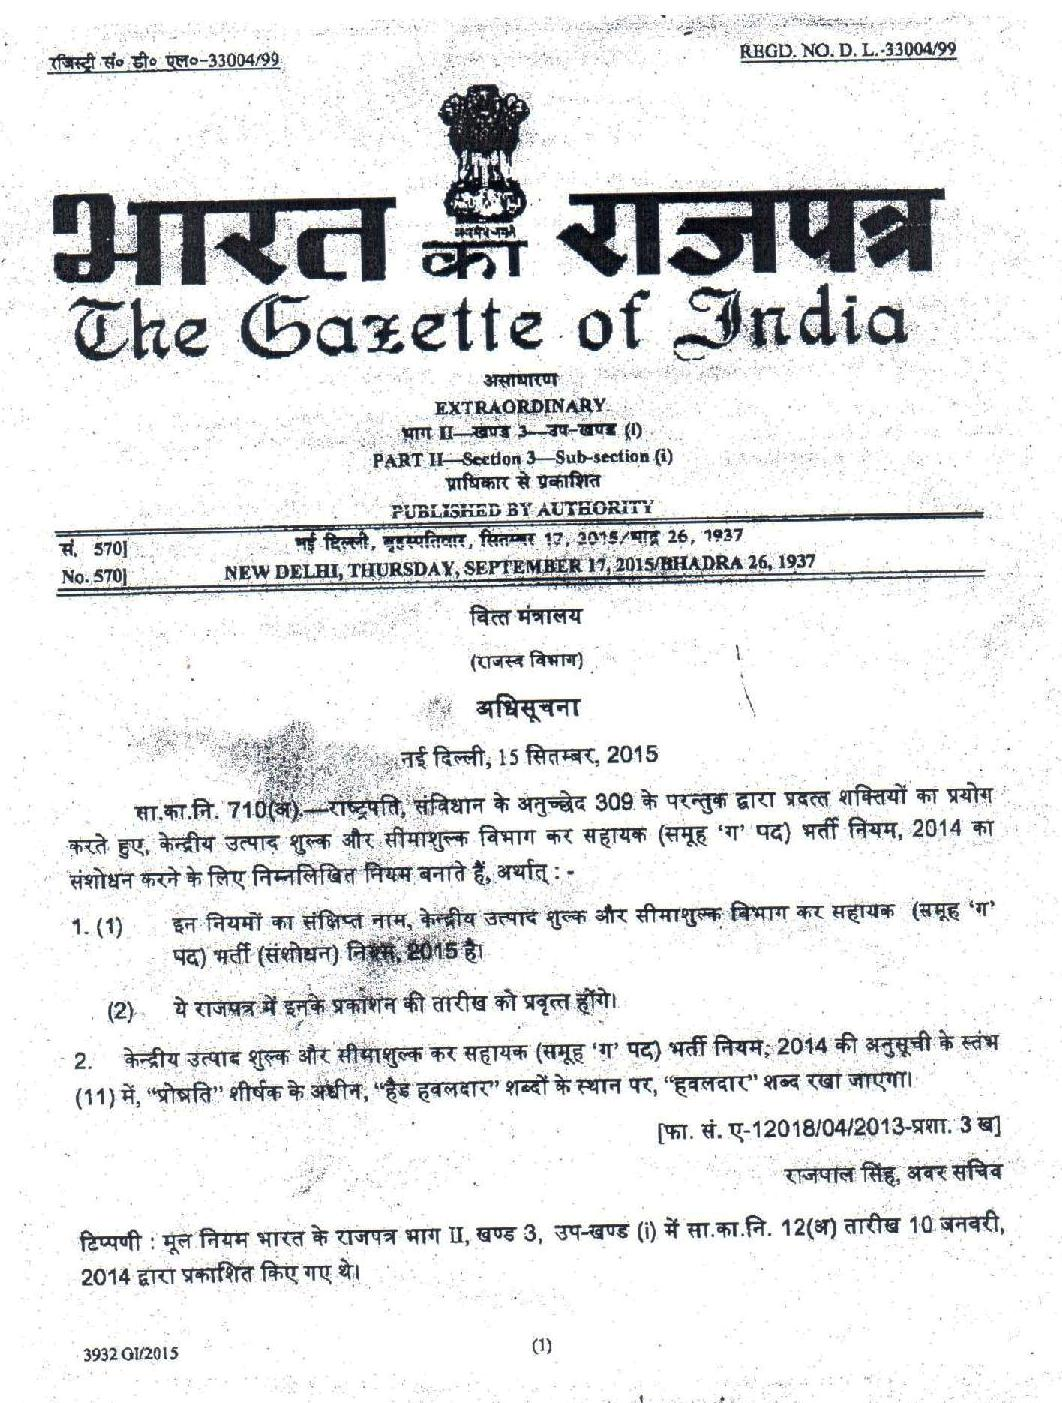 tax assistant by counting the length of service rendered in the grade of havaldar boards forwarding letter dated 22092015 along with the amendment tax assistant